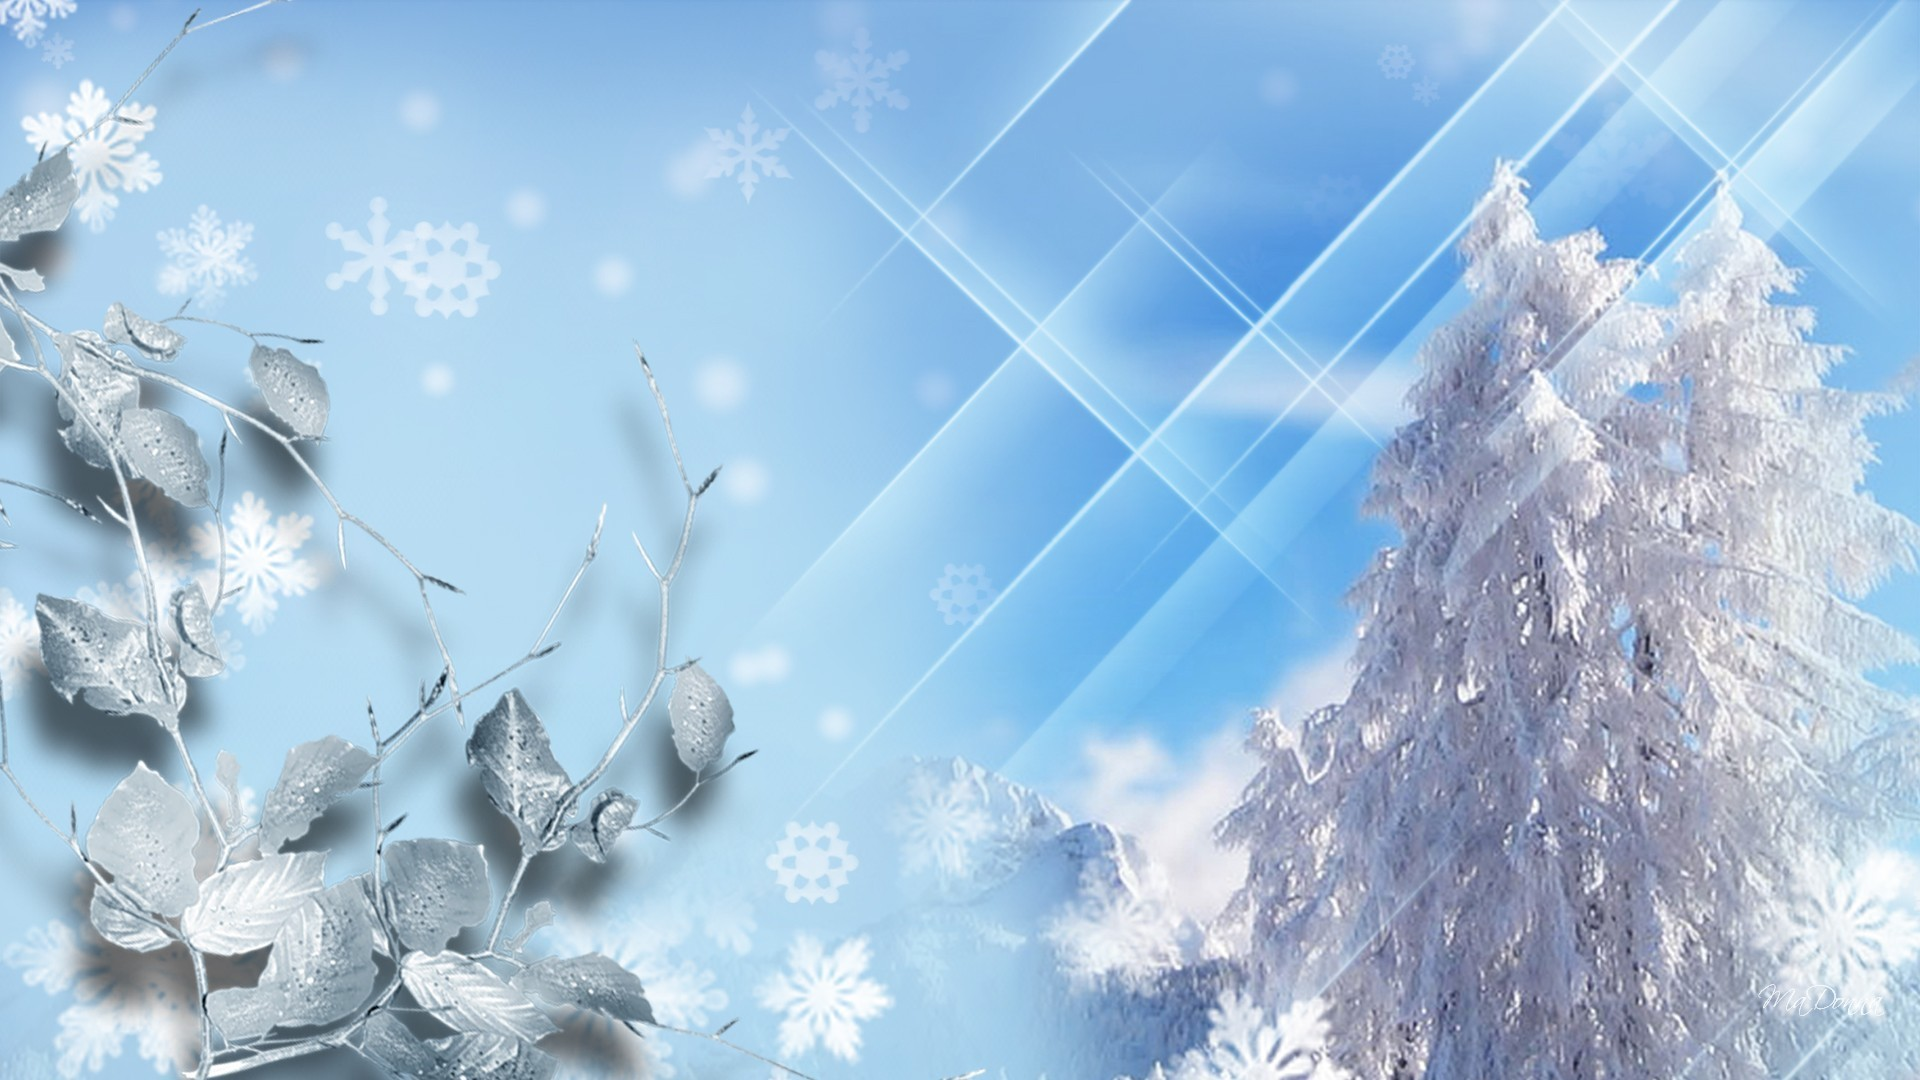 Sparkle Tag – Sky Winter Cold Bright Leaves Trees Blue Freeze Sparkle Stars  Snowing World Snow